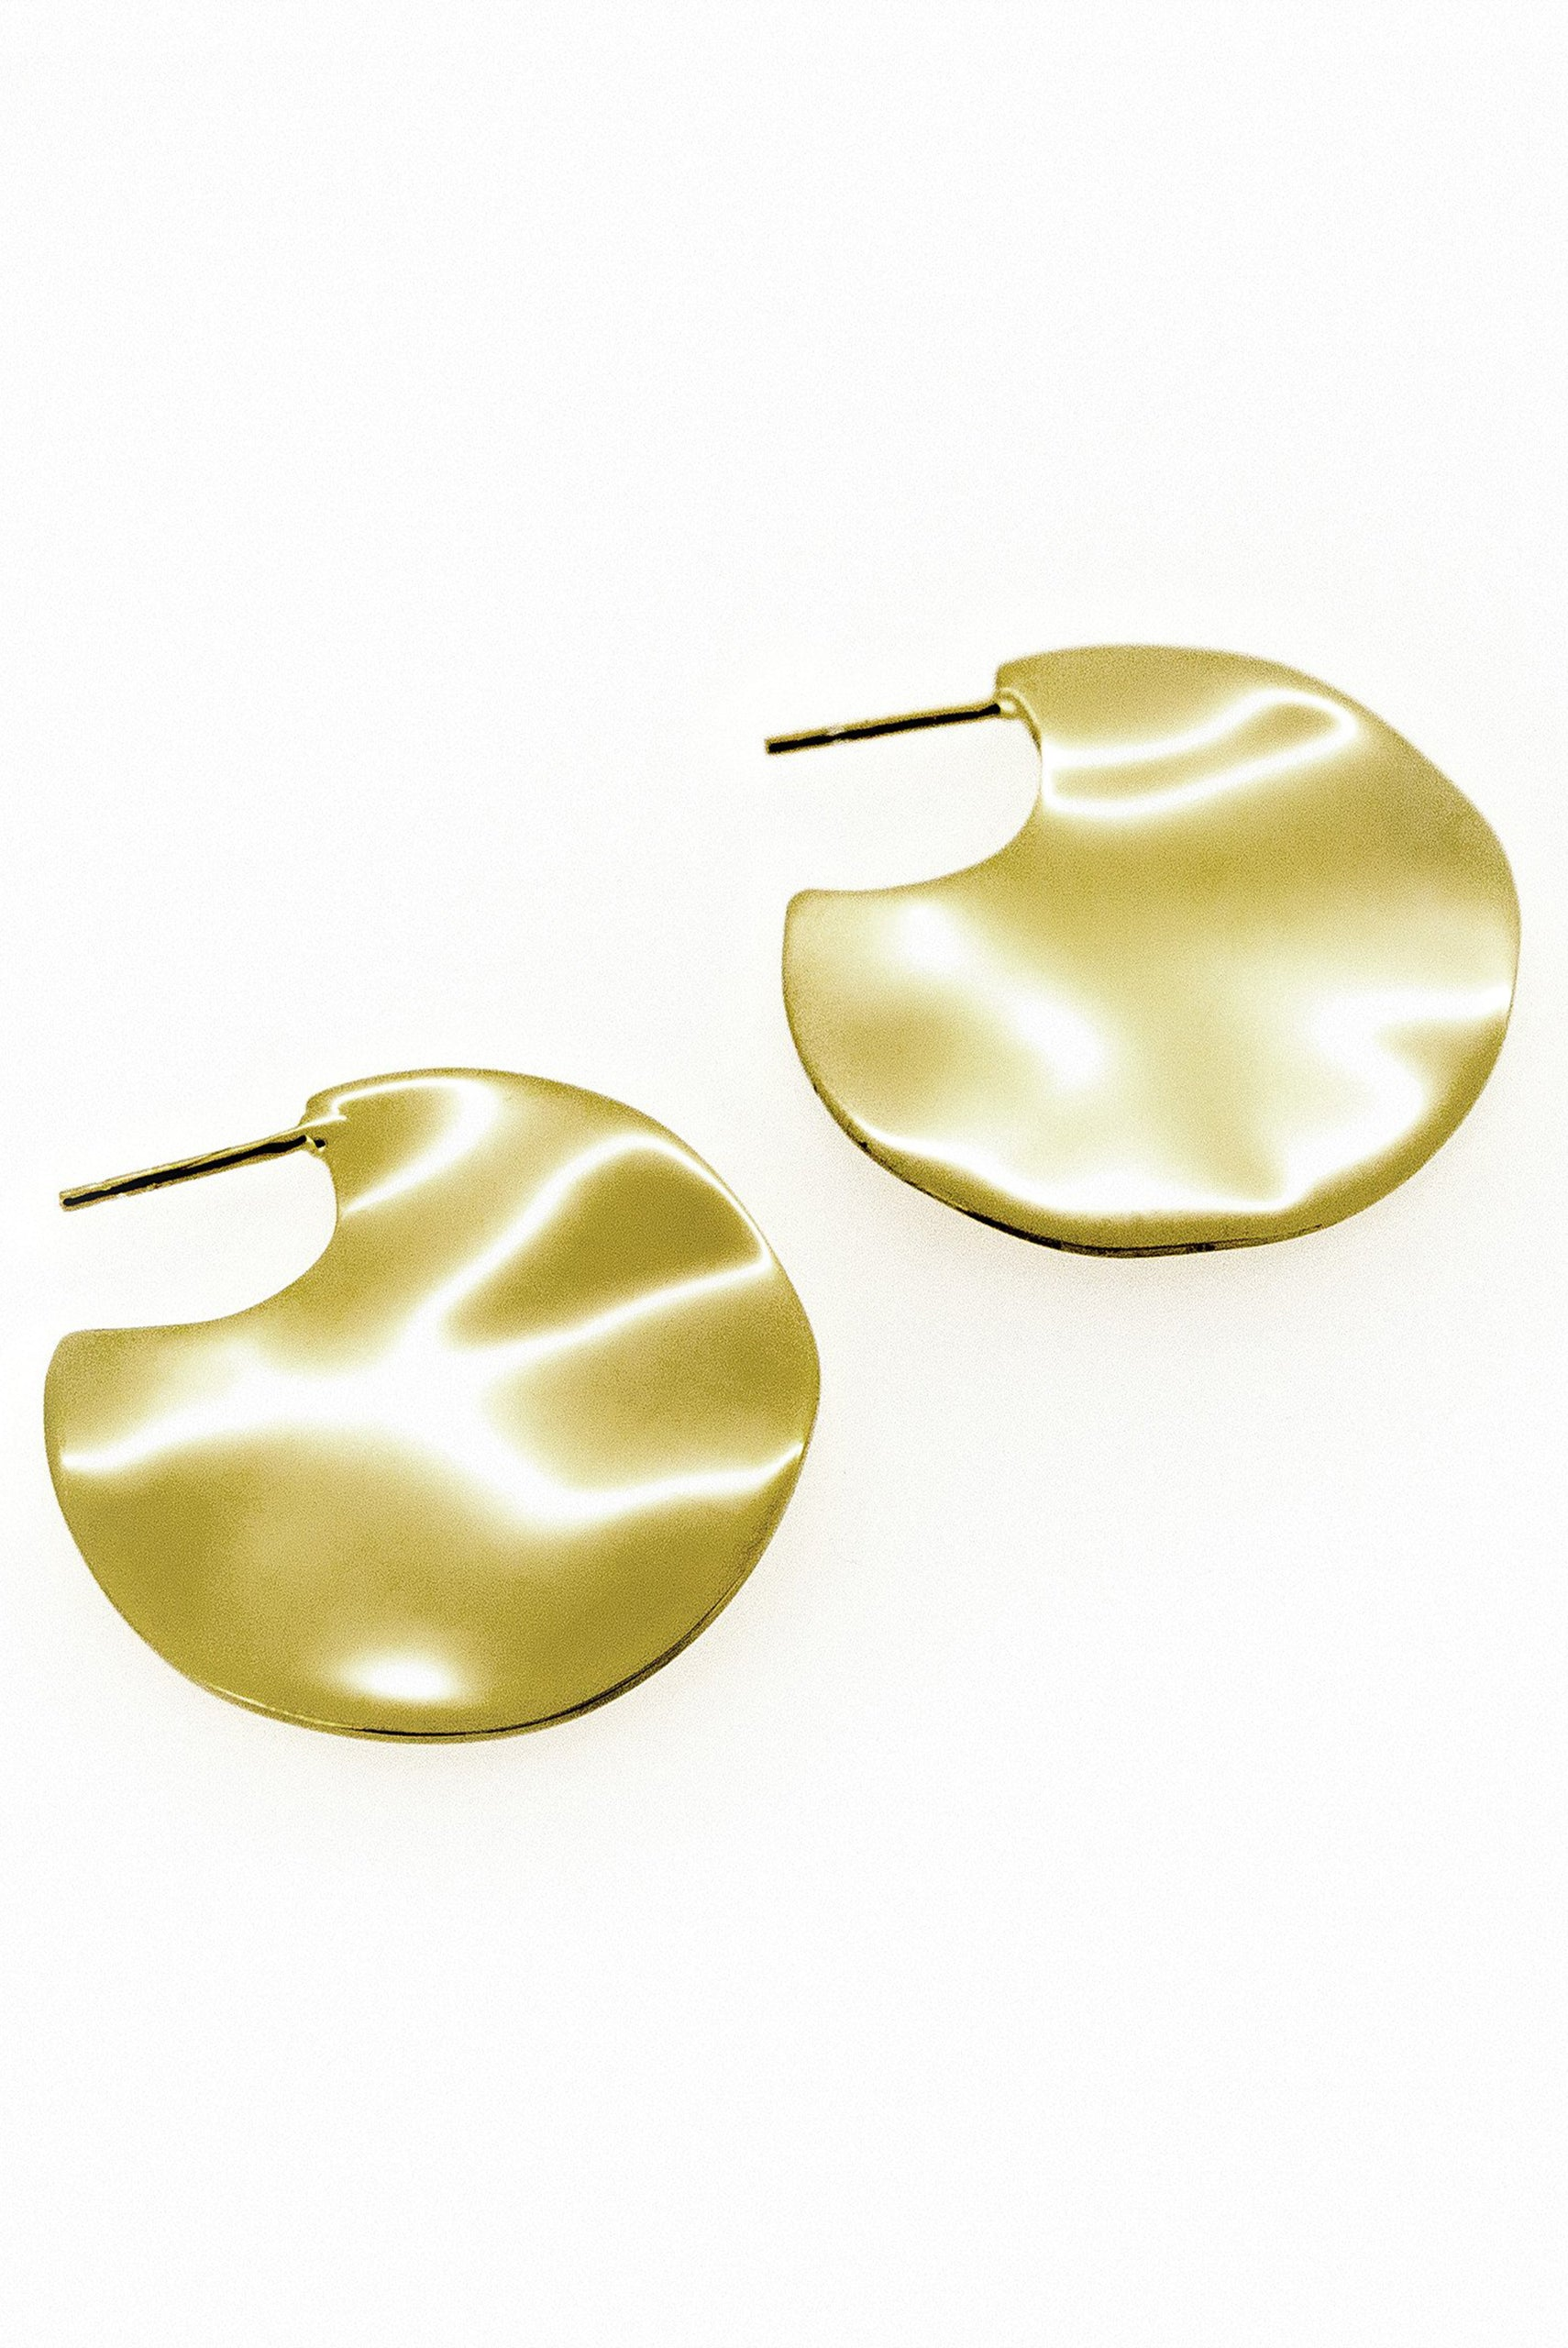 Holly Ryan Small Gold Wavee Earrings